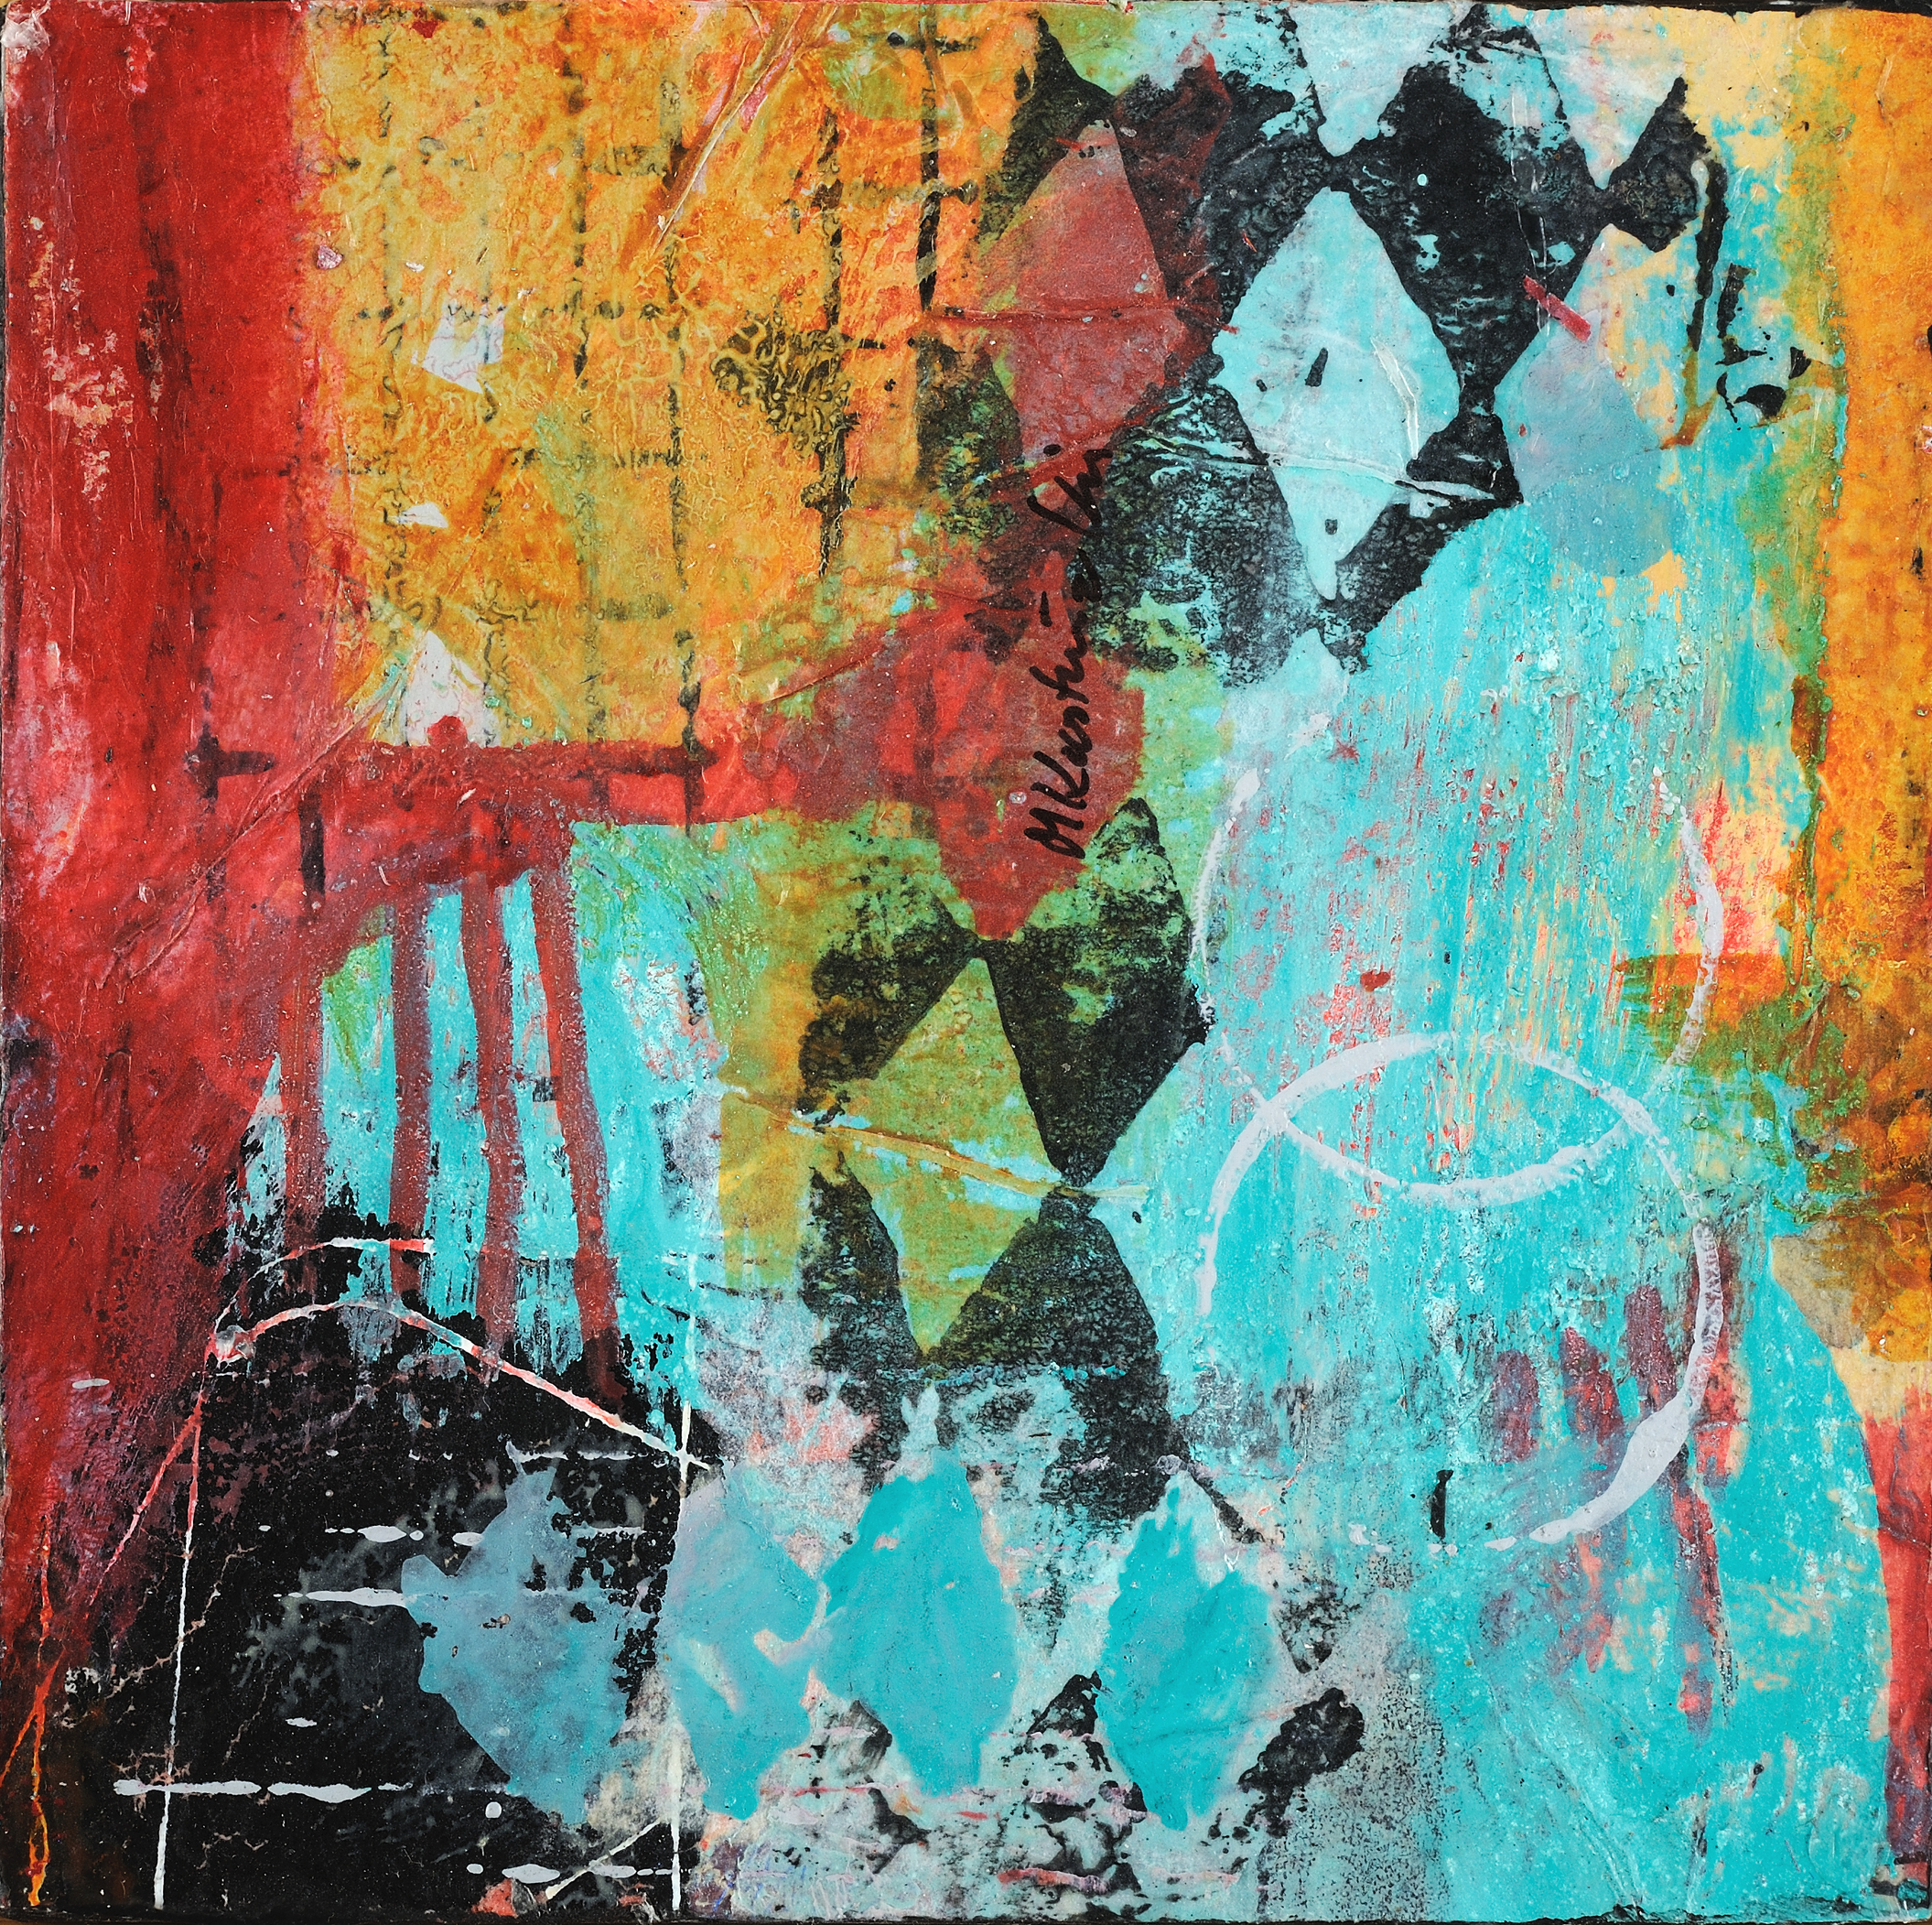 art spots abstract red-teal 4 of 4.jpg